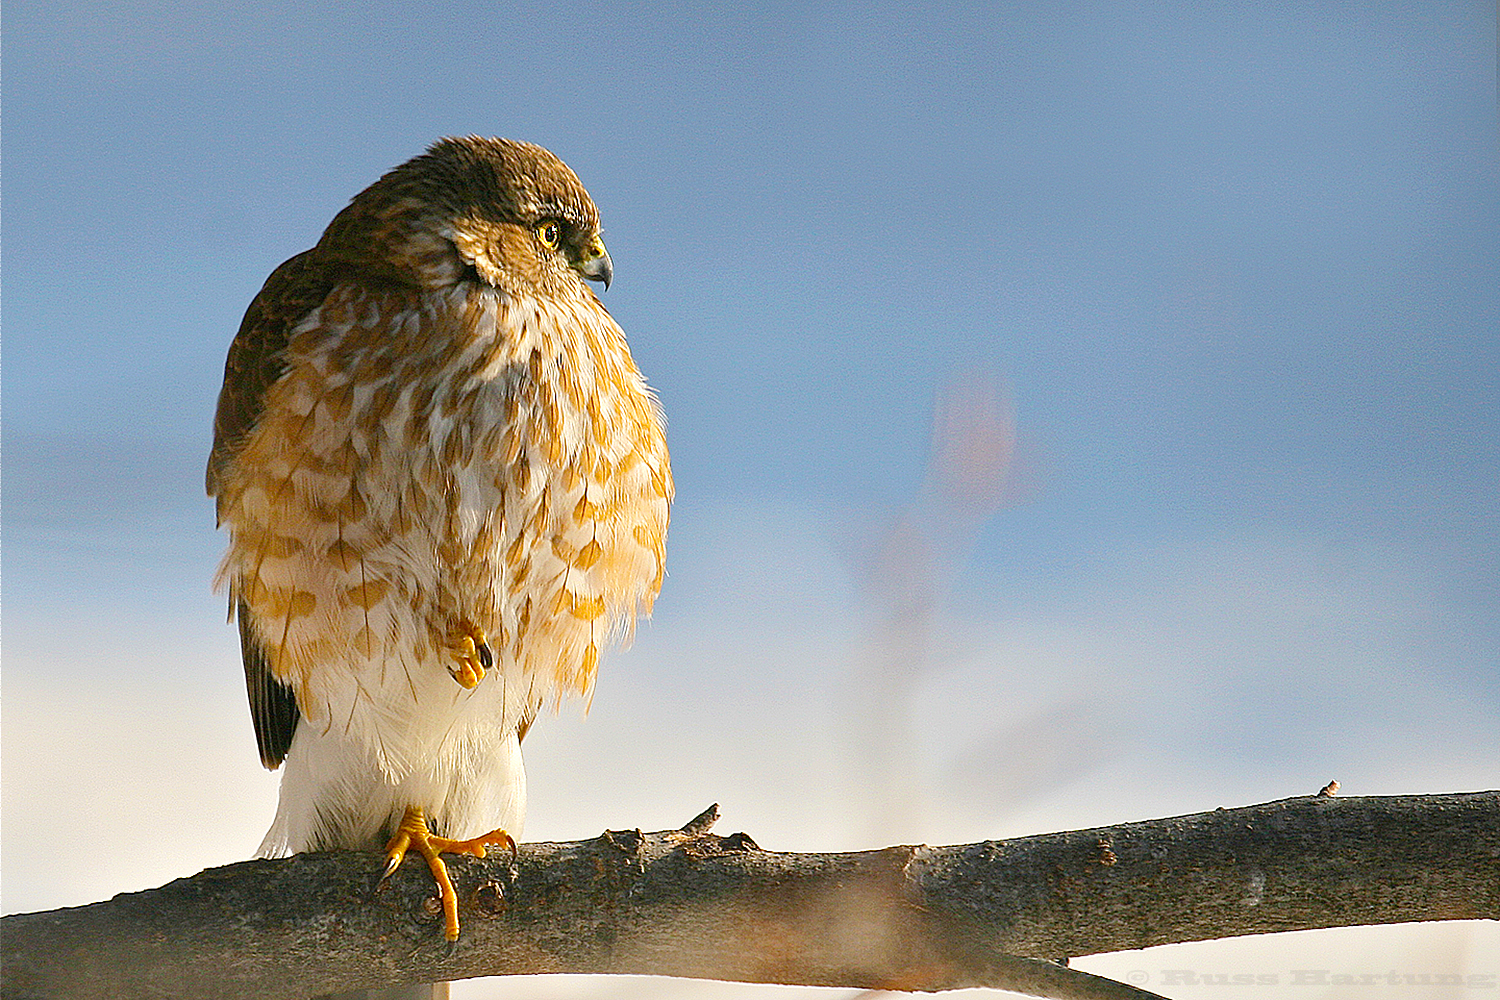 Sharp-shinned hawk waiting near the bird feeders.